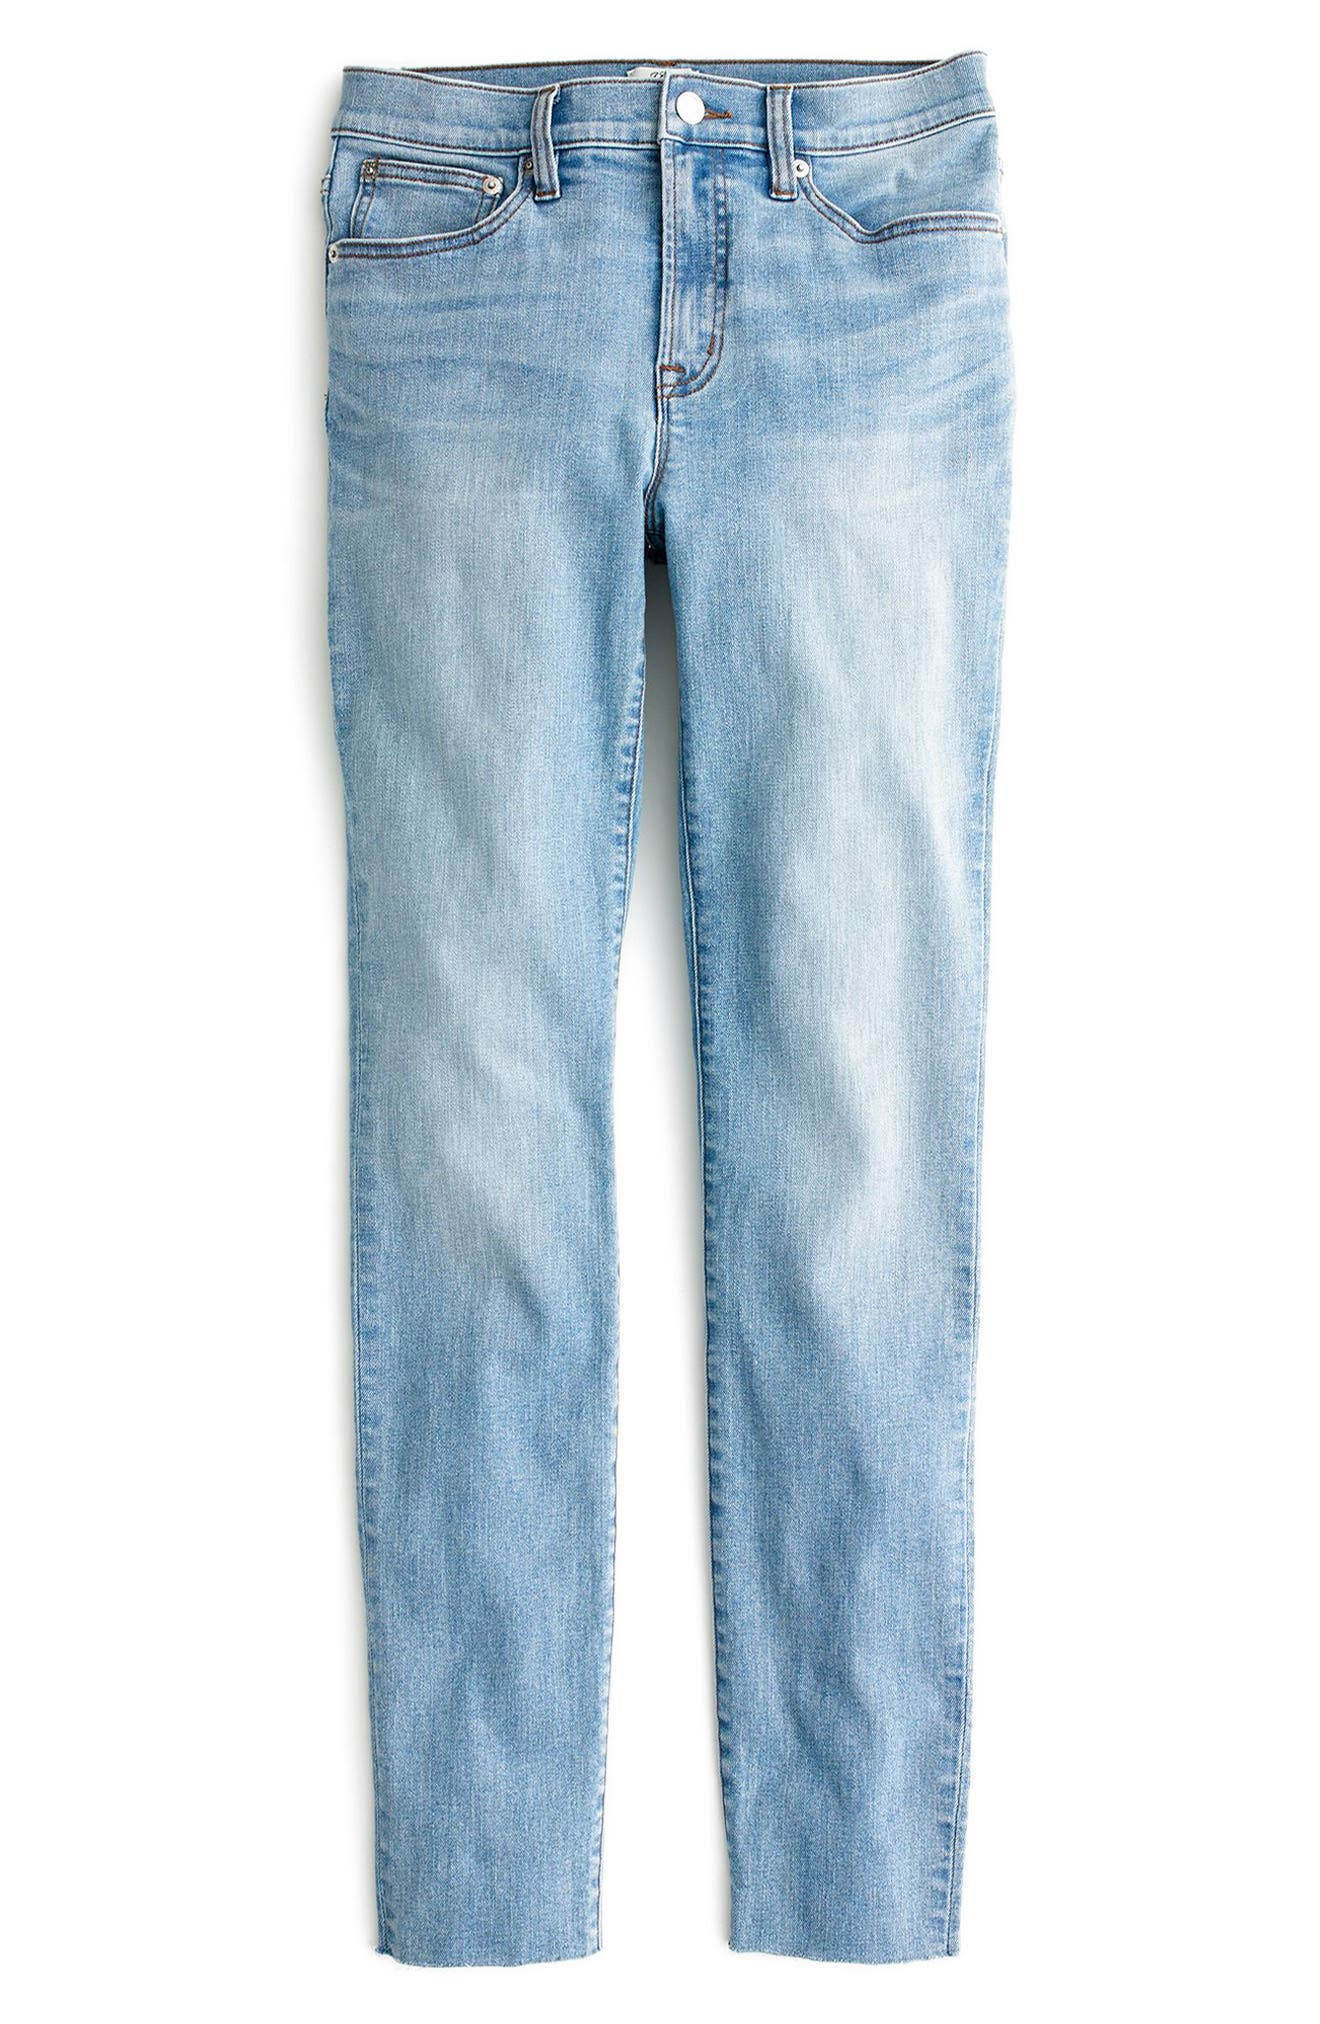 High Rise Toothpick Jeans,                             Alternate thumbnail 4, color,                             400